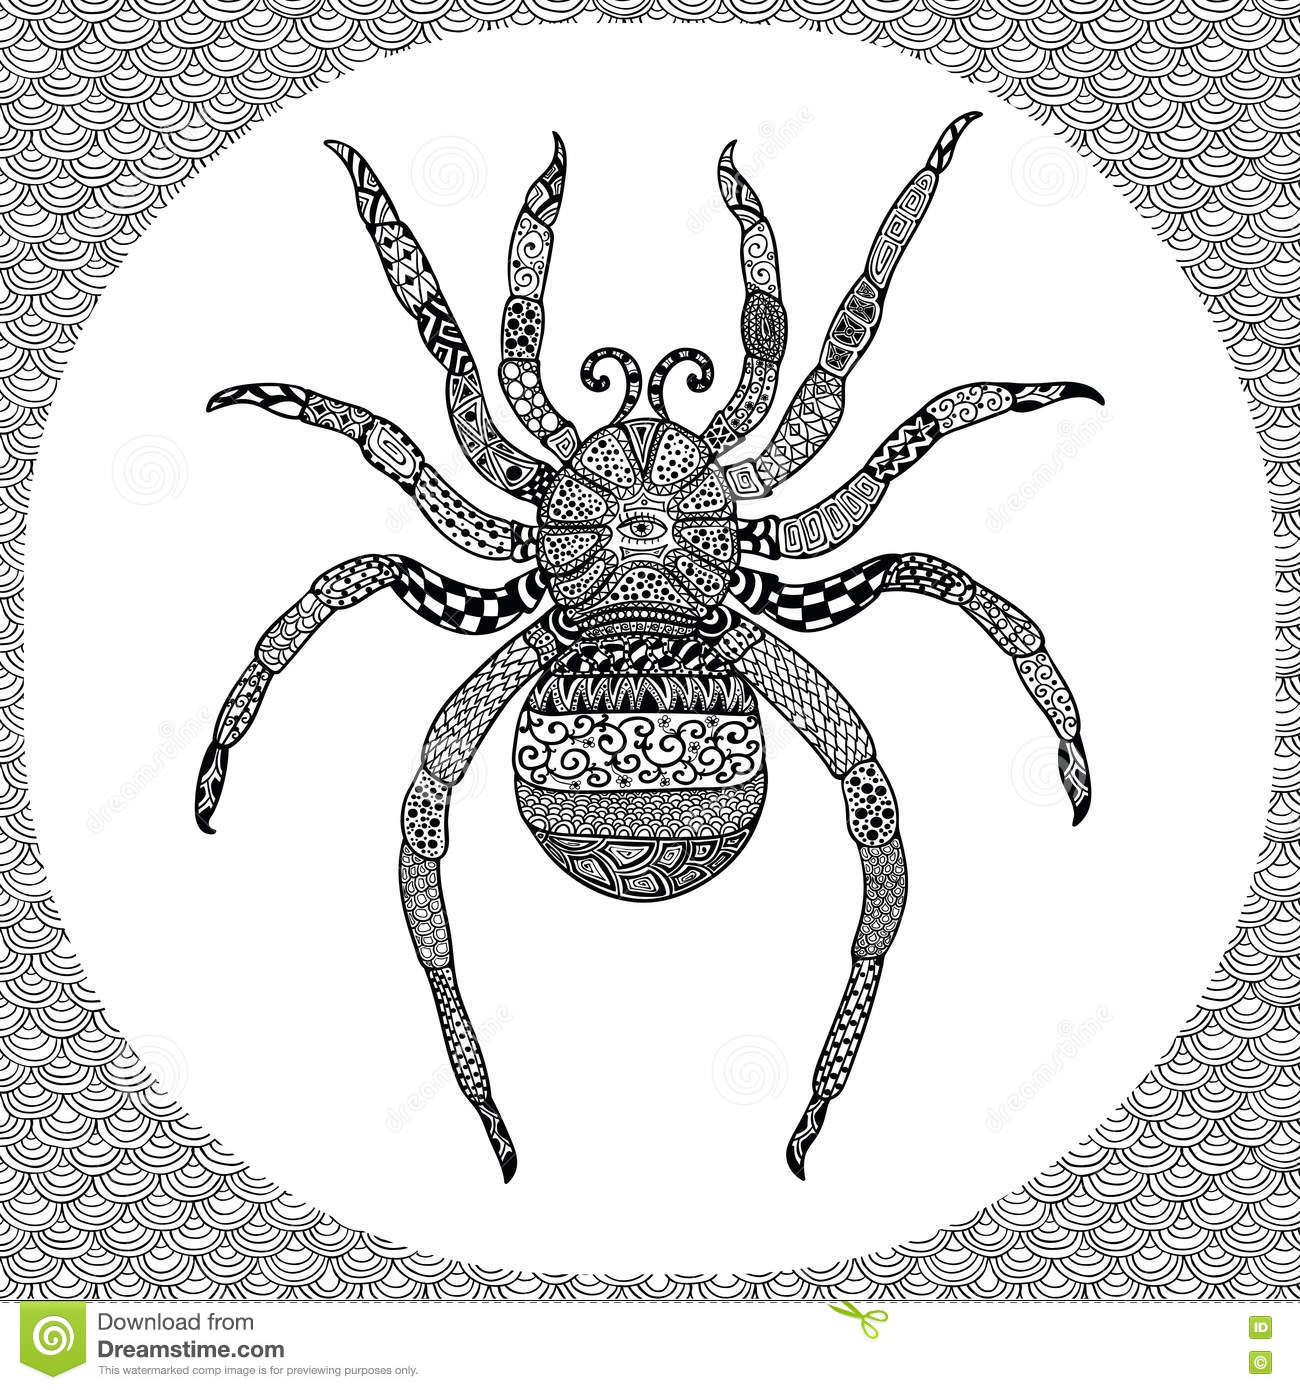 coloring page of balck spider zentangle illustartion stock vector